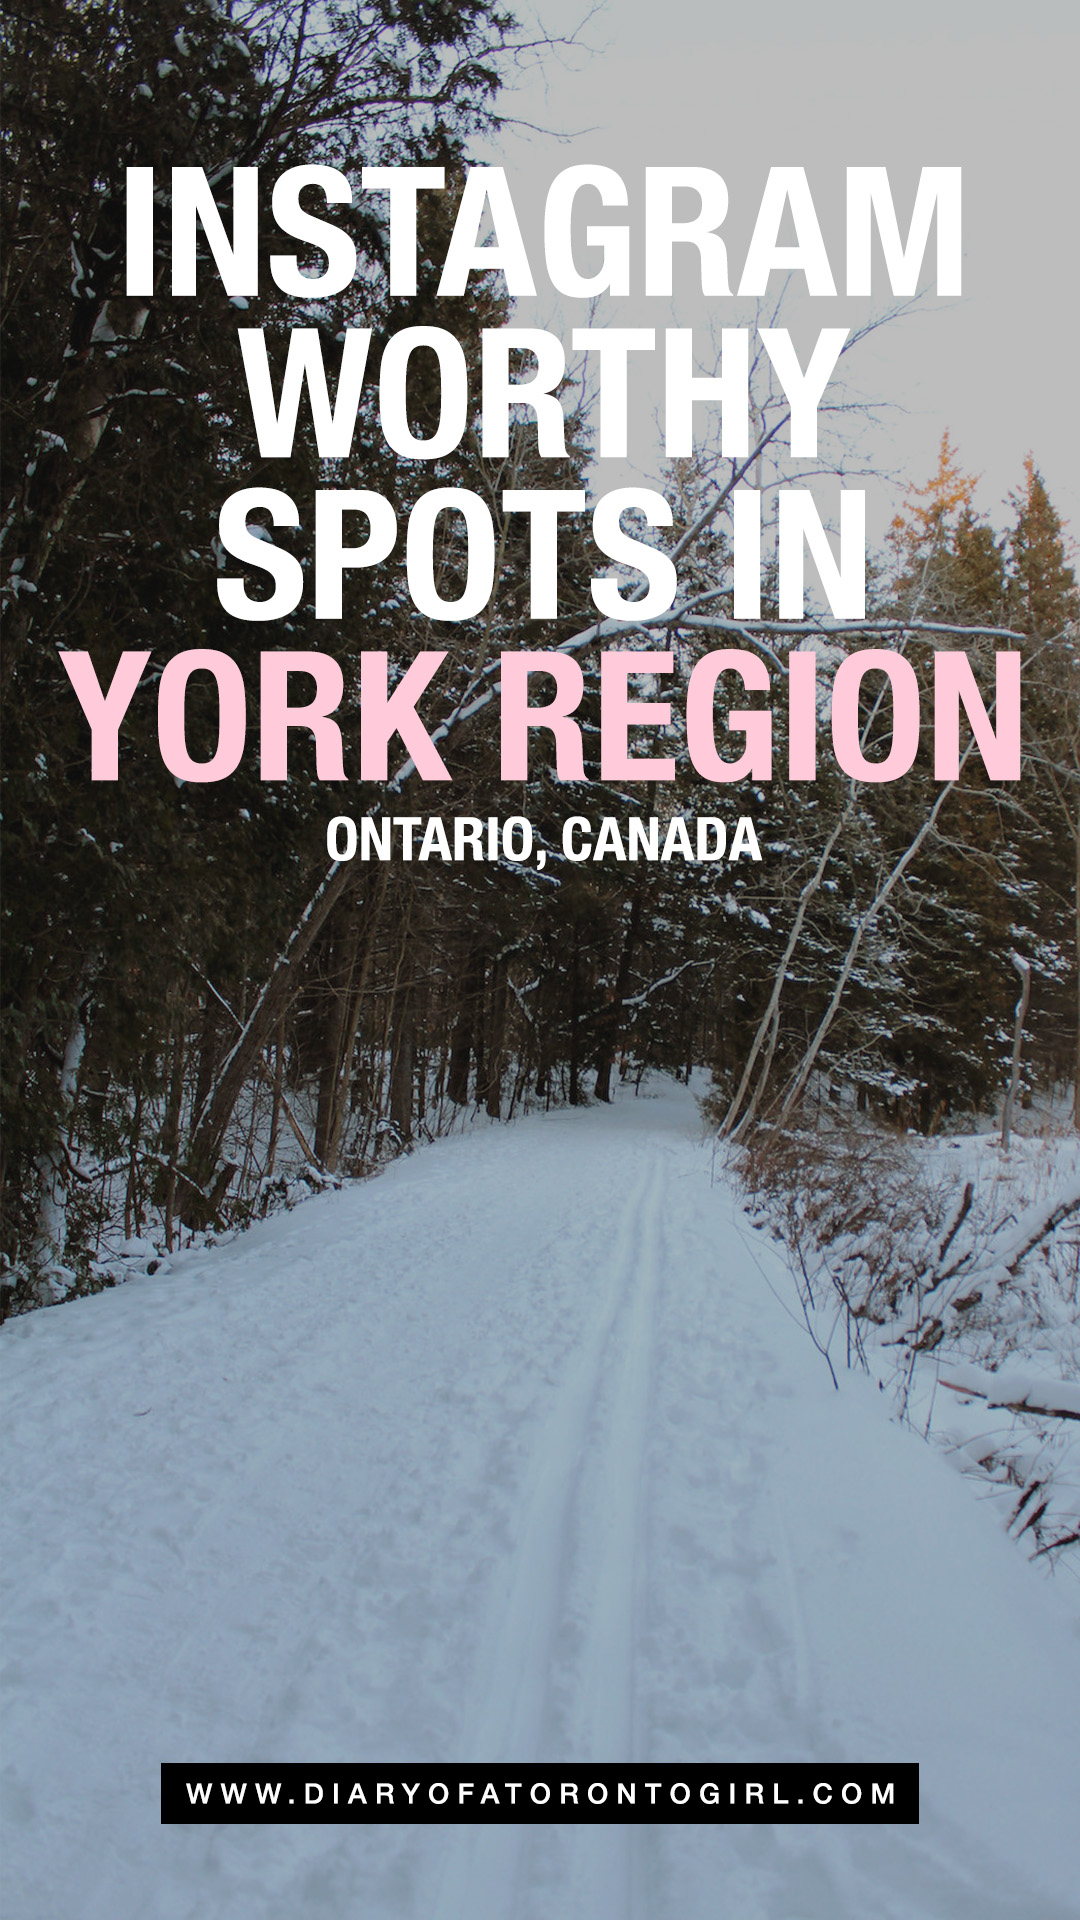 The most Instagram-worthy spots in York Region, Ontario to visit, including Newmarket, Richmond Hill, Markham, Thornhill, and Vaughan!